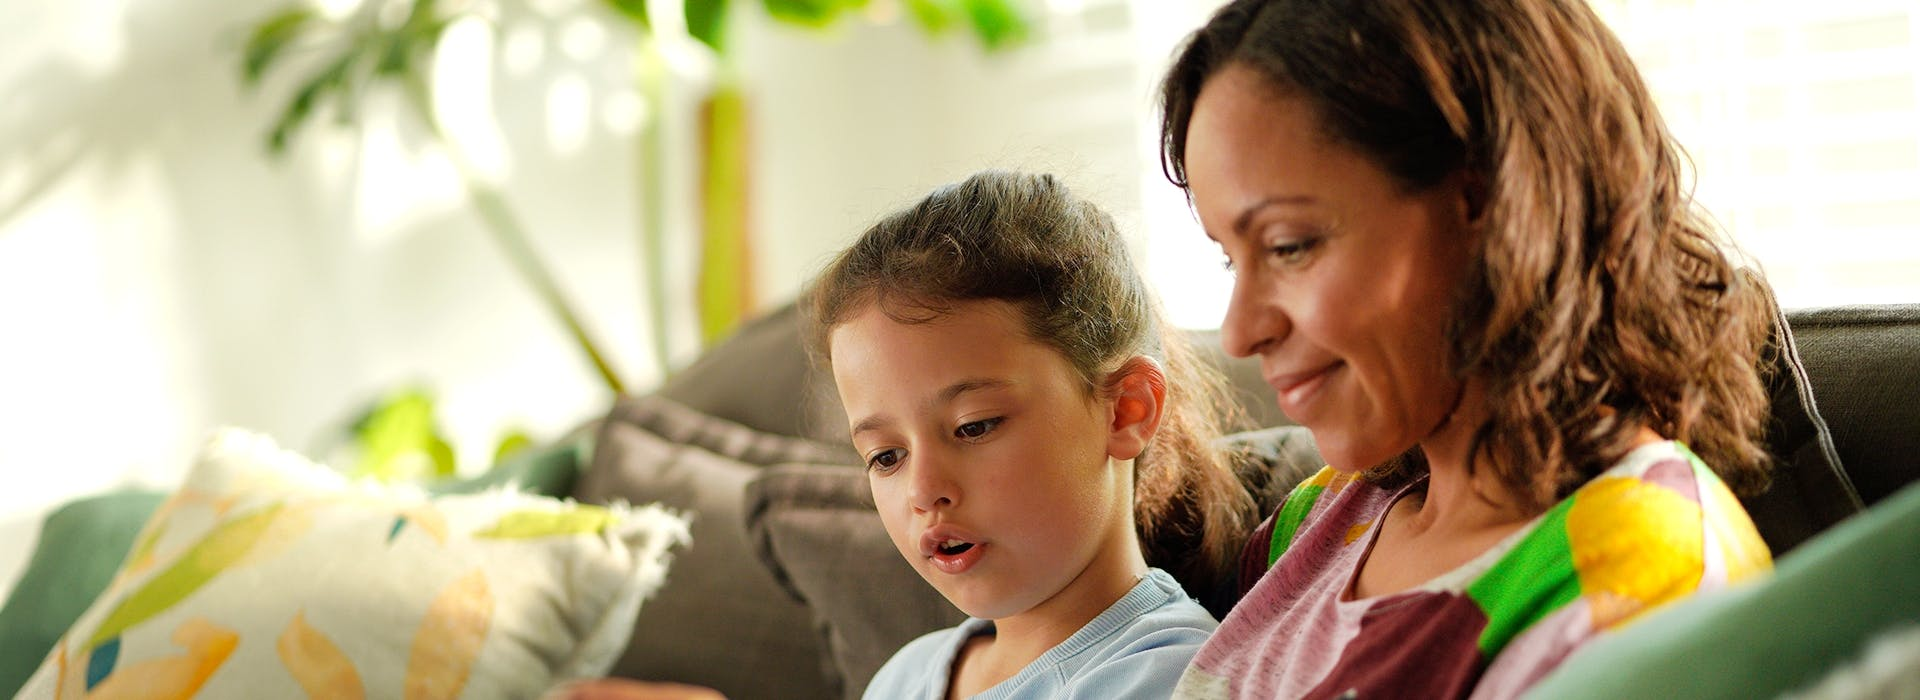 Mum and daughter reading book on couch